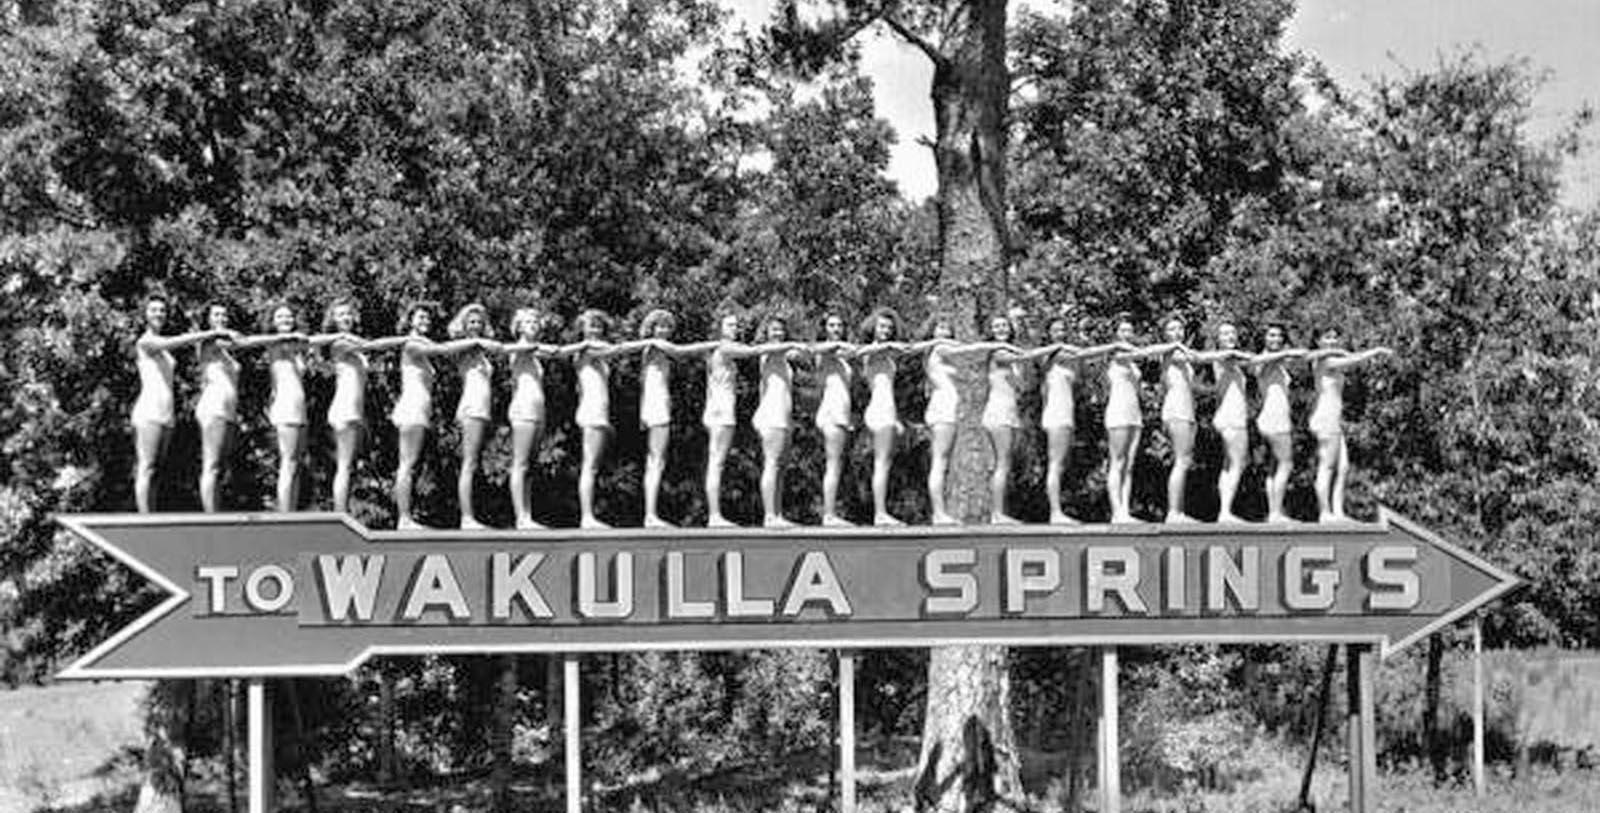 Historic Image of Women Outside The Lodge at Wakulla Springs, 1937, Member of Historic Hotels of America, in Wakulla Springs, Florida, Discover